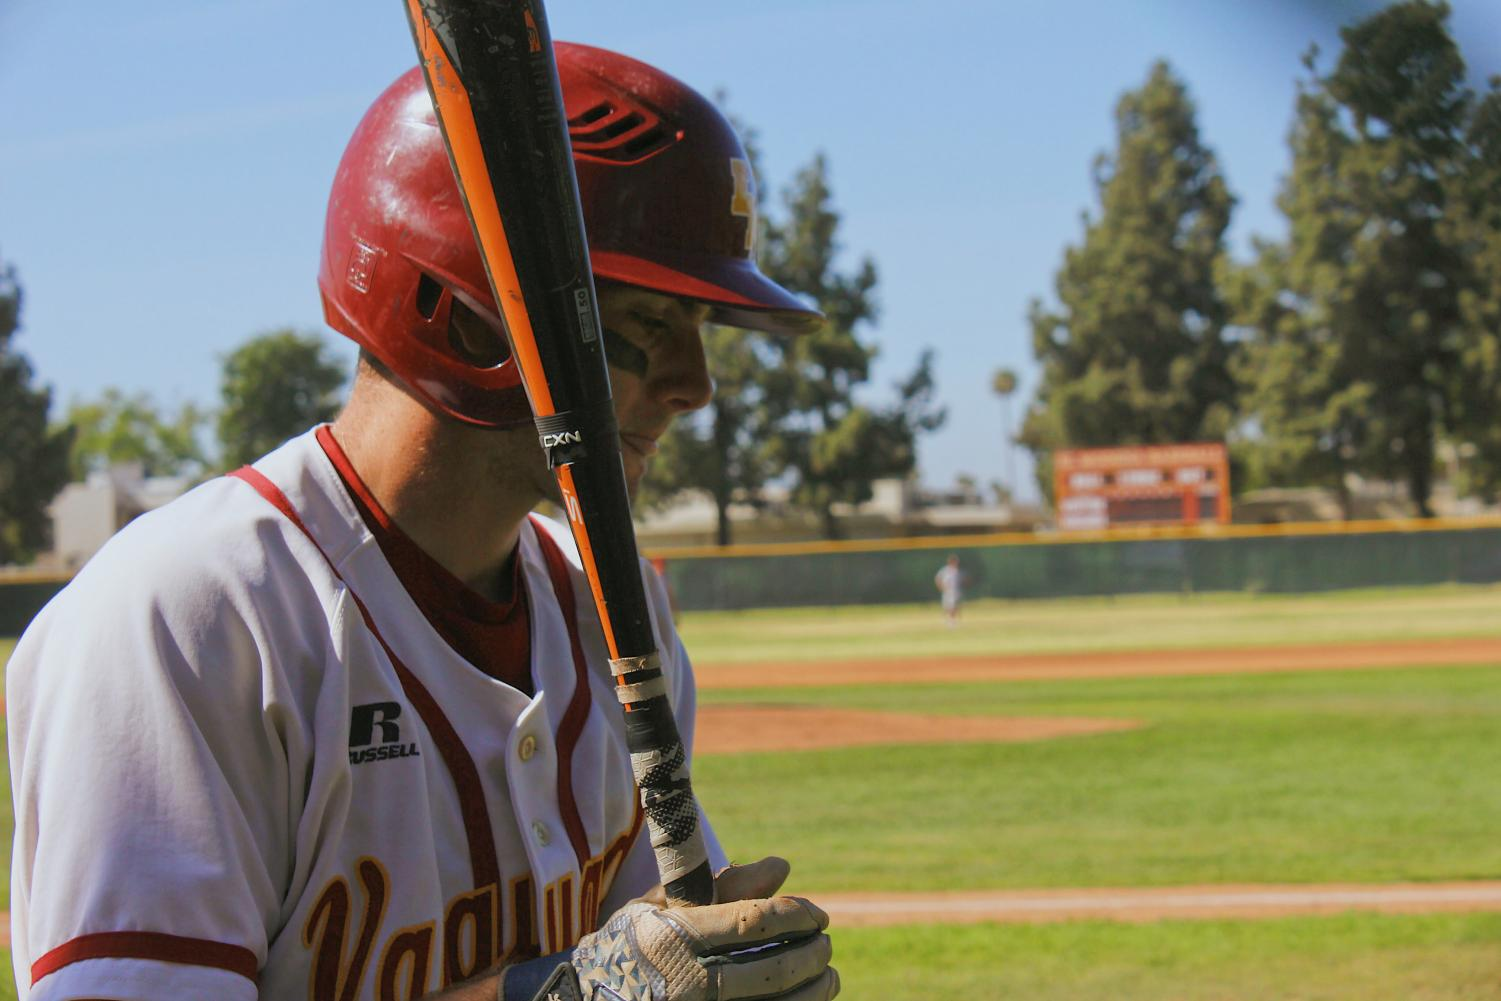 #2 Justin Simpson on deck in the game against Esperanza.